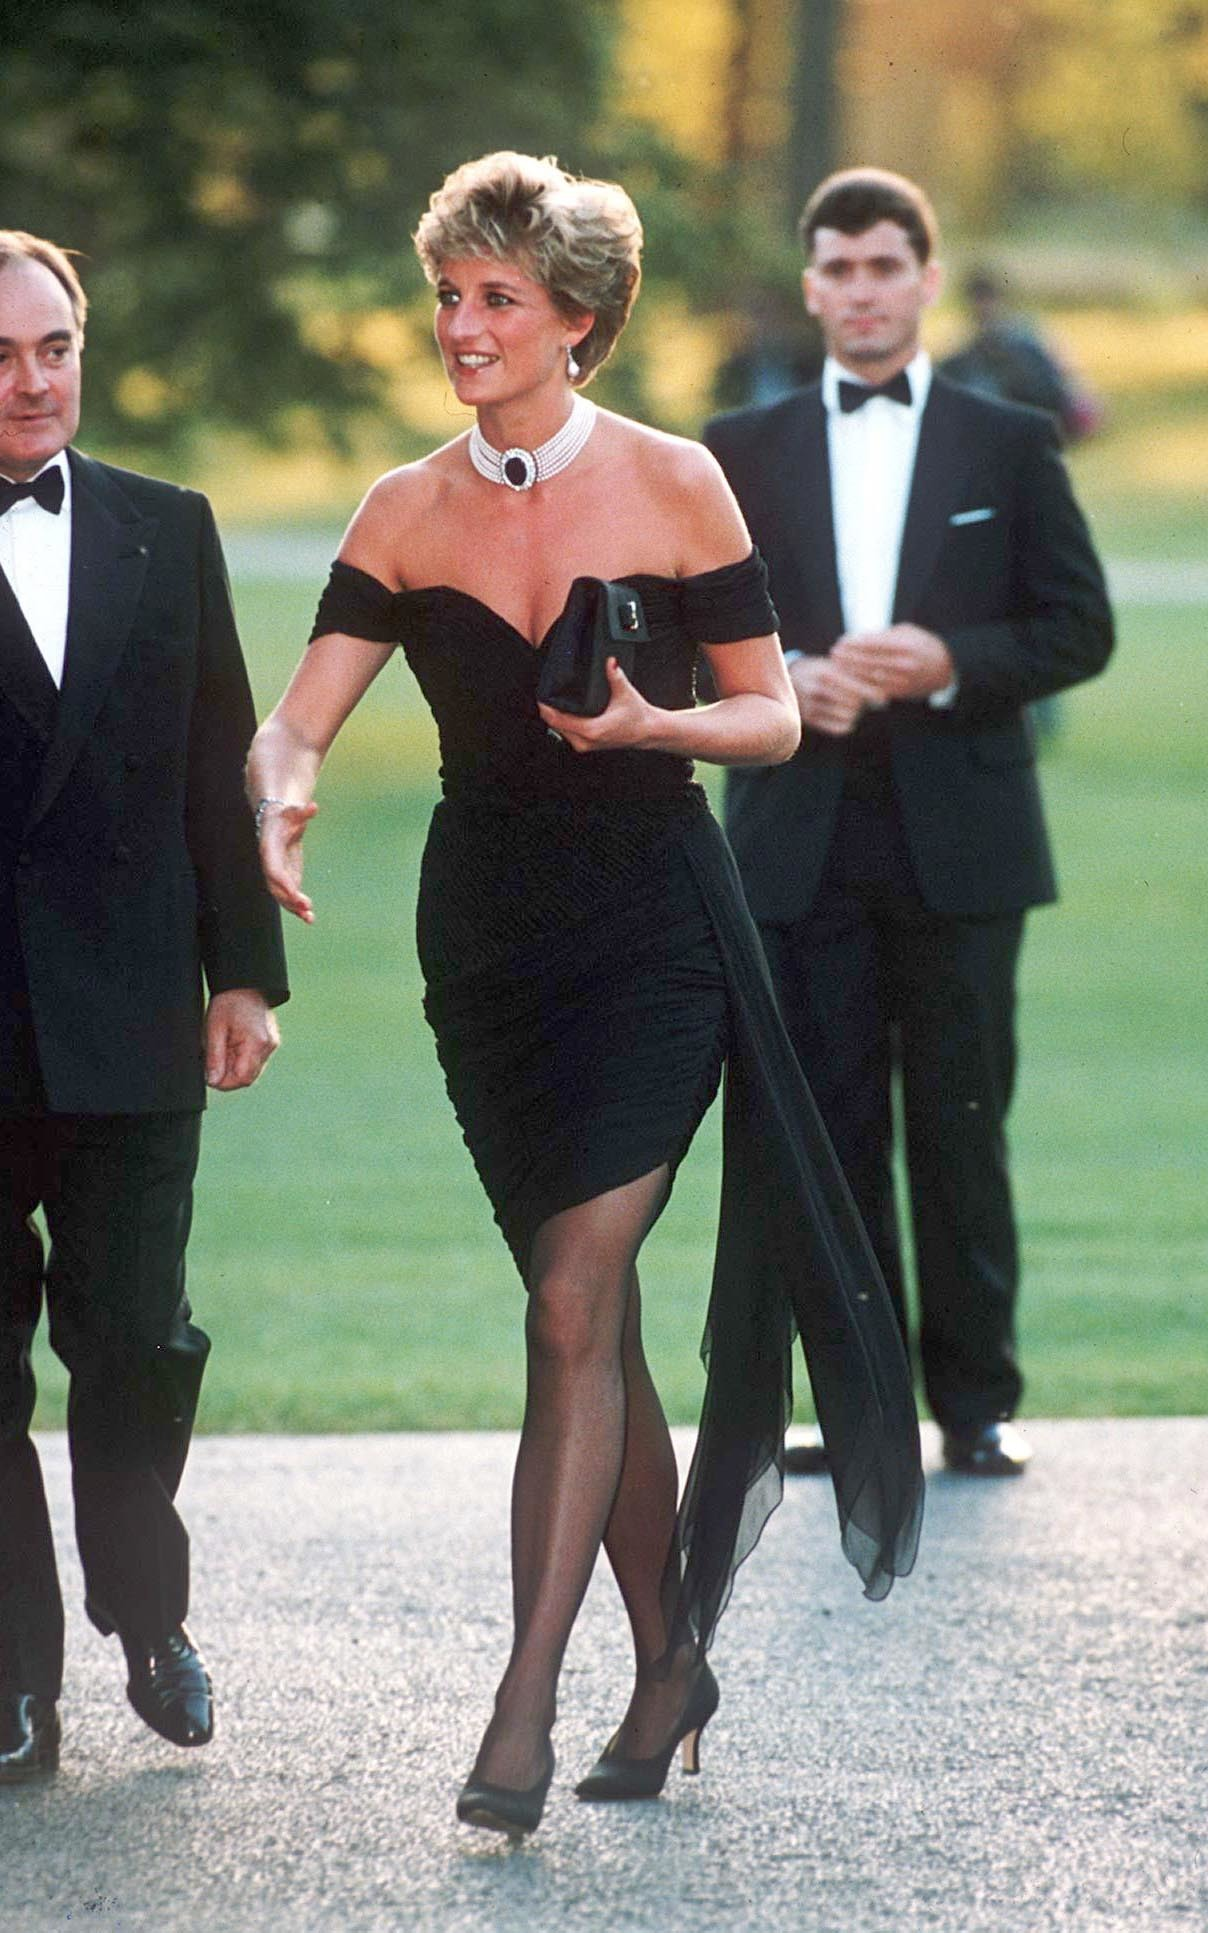 The best retro photos of Princess Diana